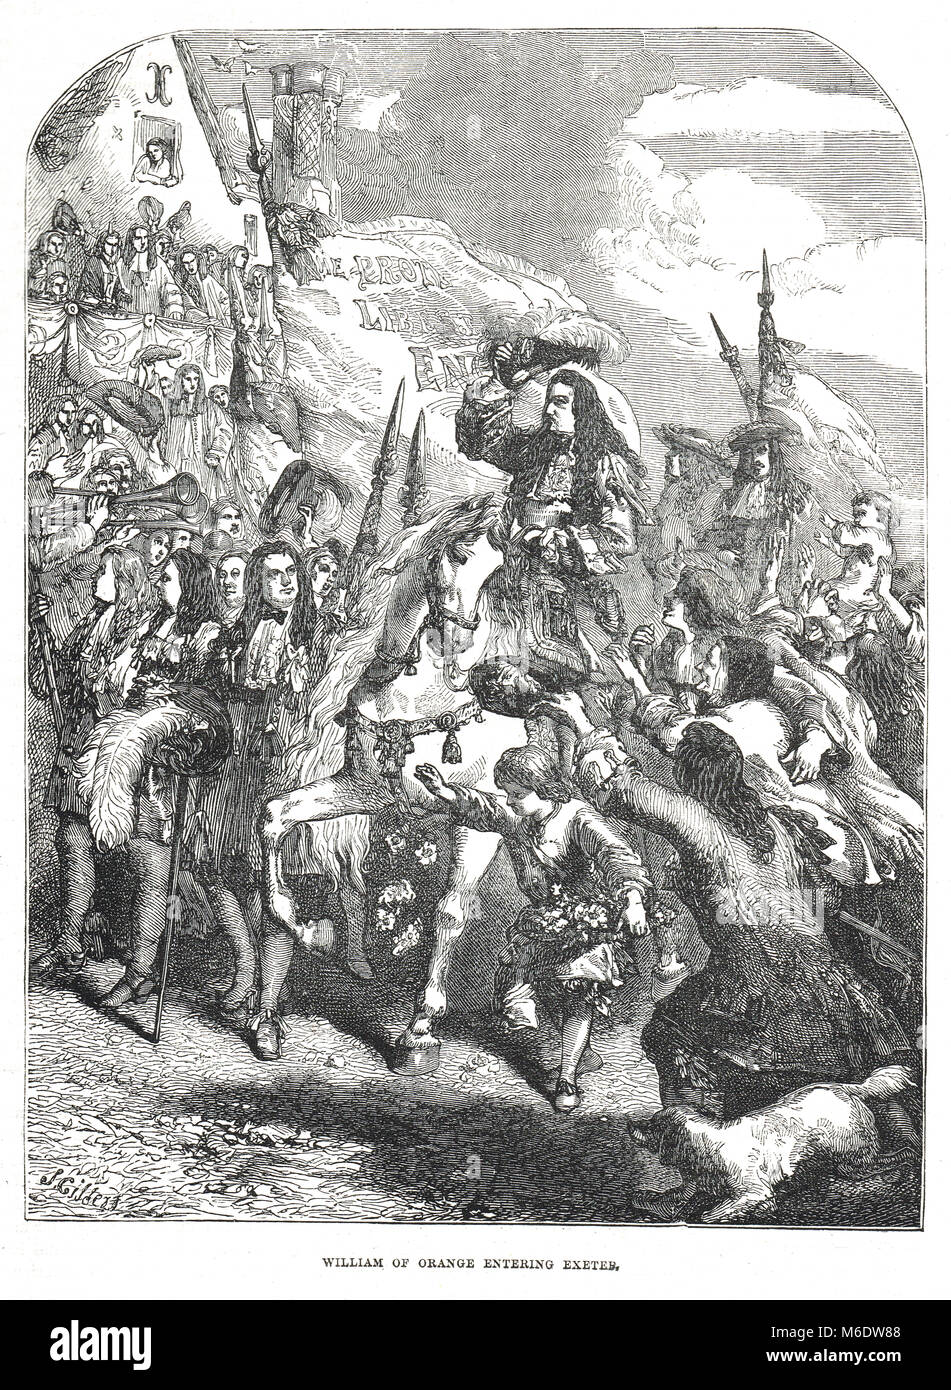 William of Orange, entering Exeter, the Glorious Revolution, invasion of England in 1688 - Stock Image